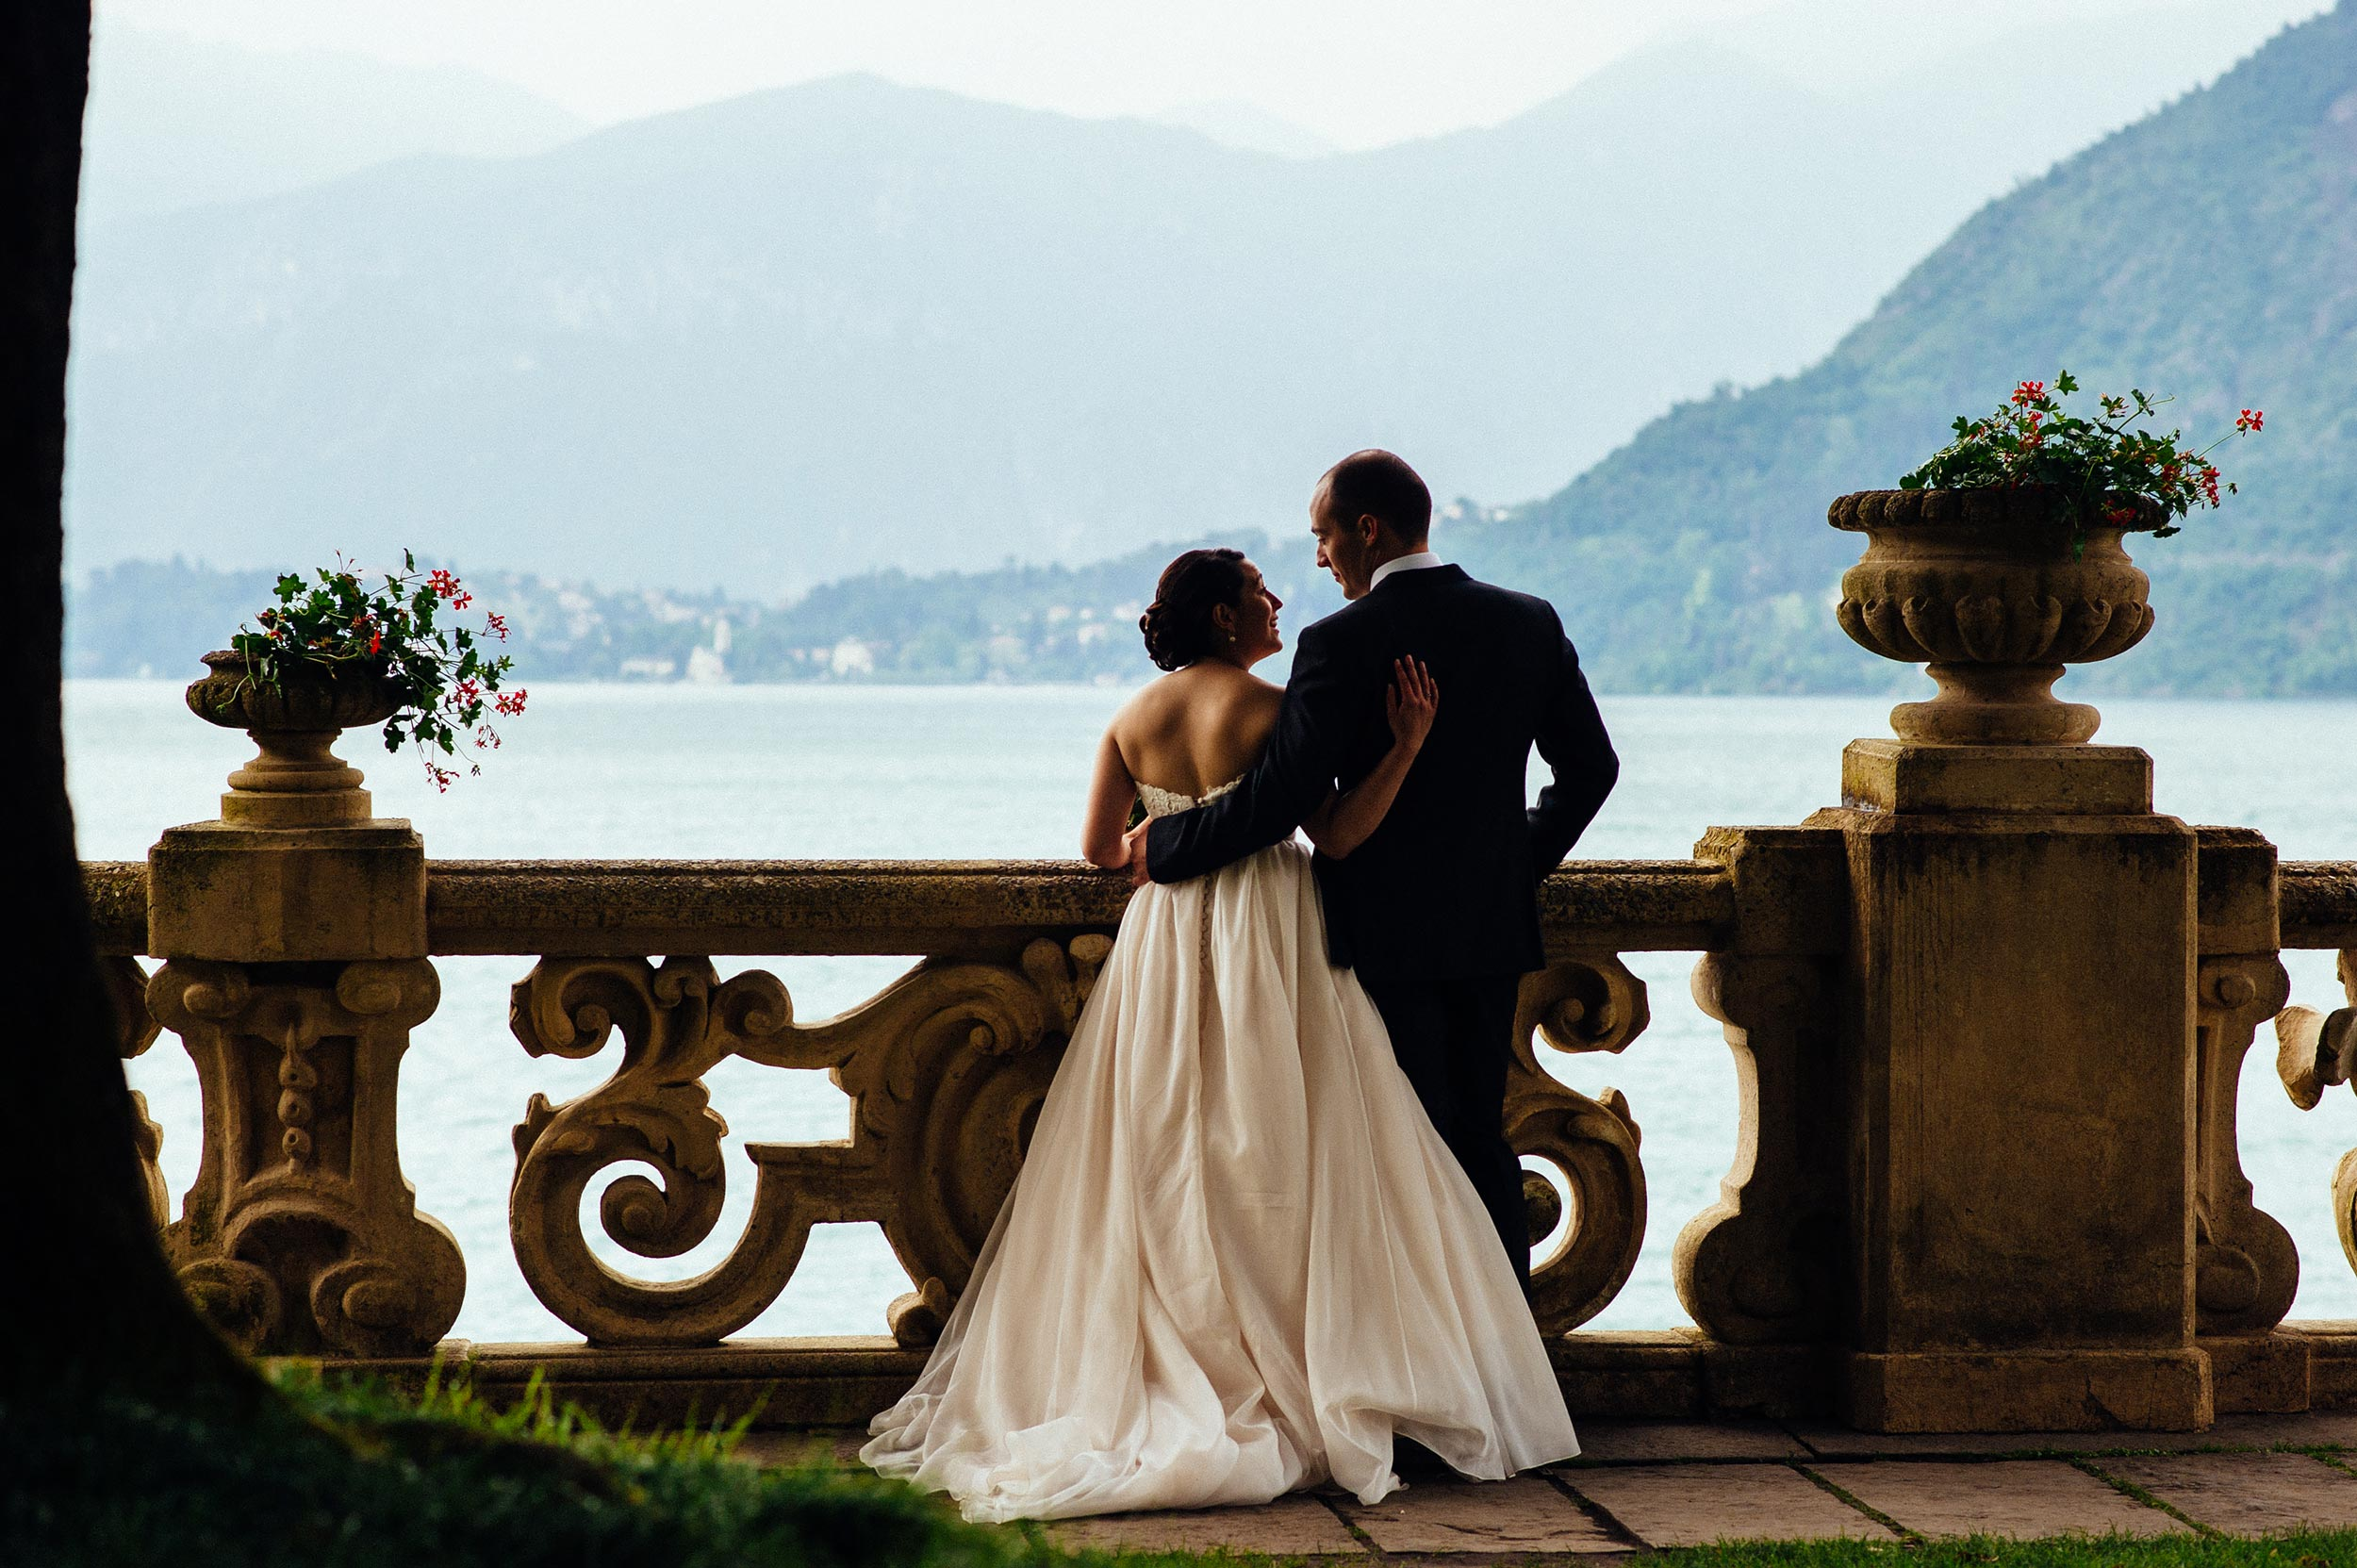 bride-and-groom-looking-balcony-Villa-Del-Balbianello-Bellagio-Lake-Como-Wedding-Photographer-Italy-Alessandro-Avenali.jpg